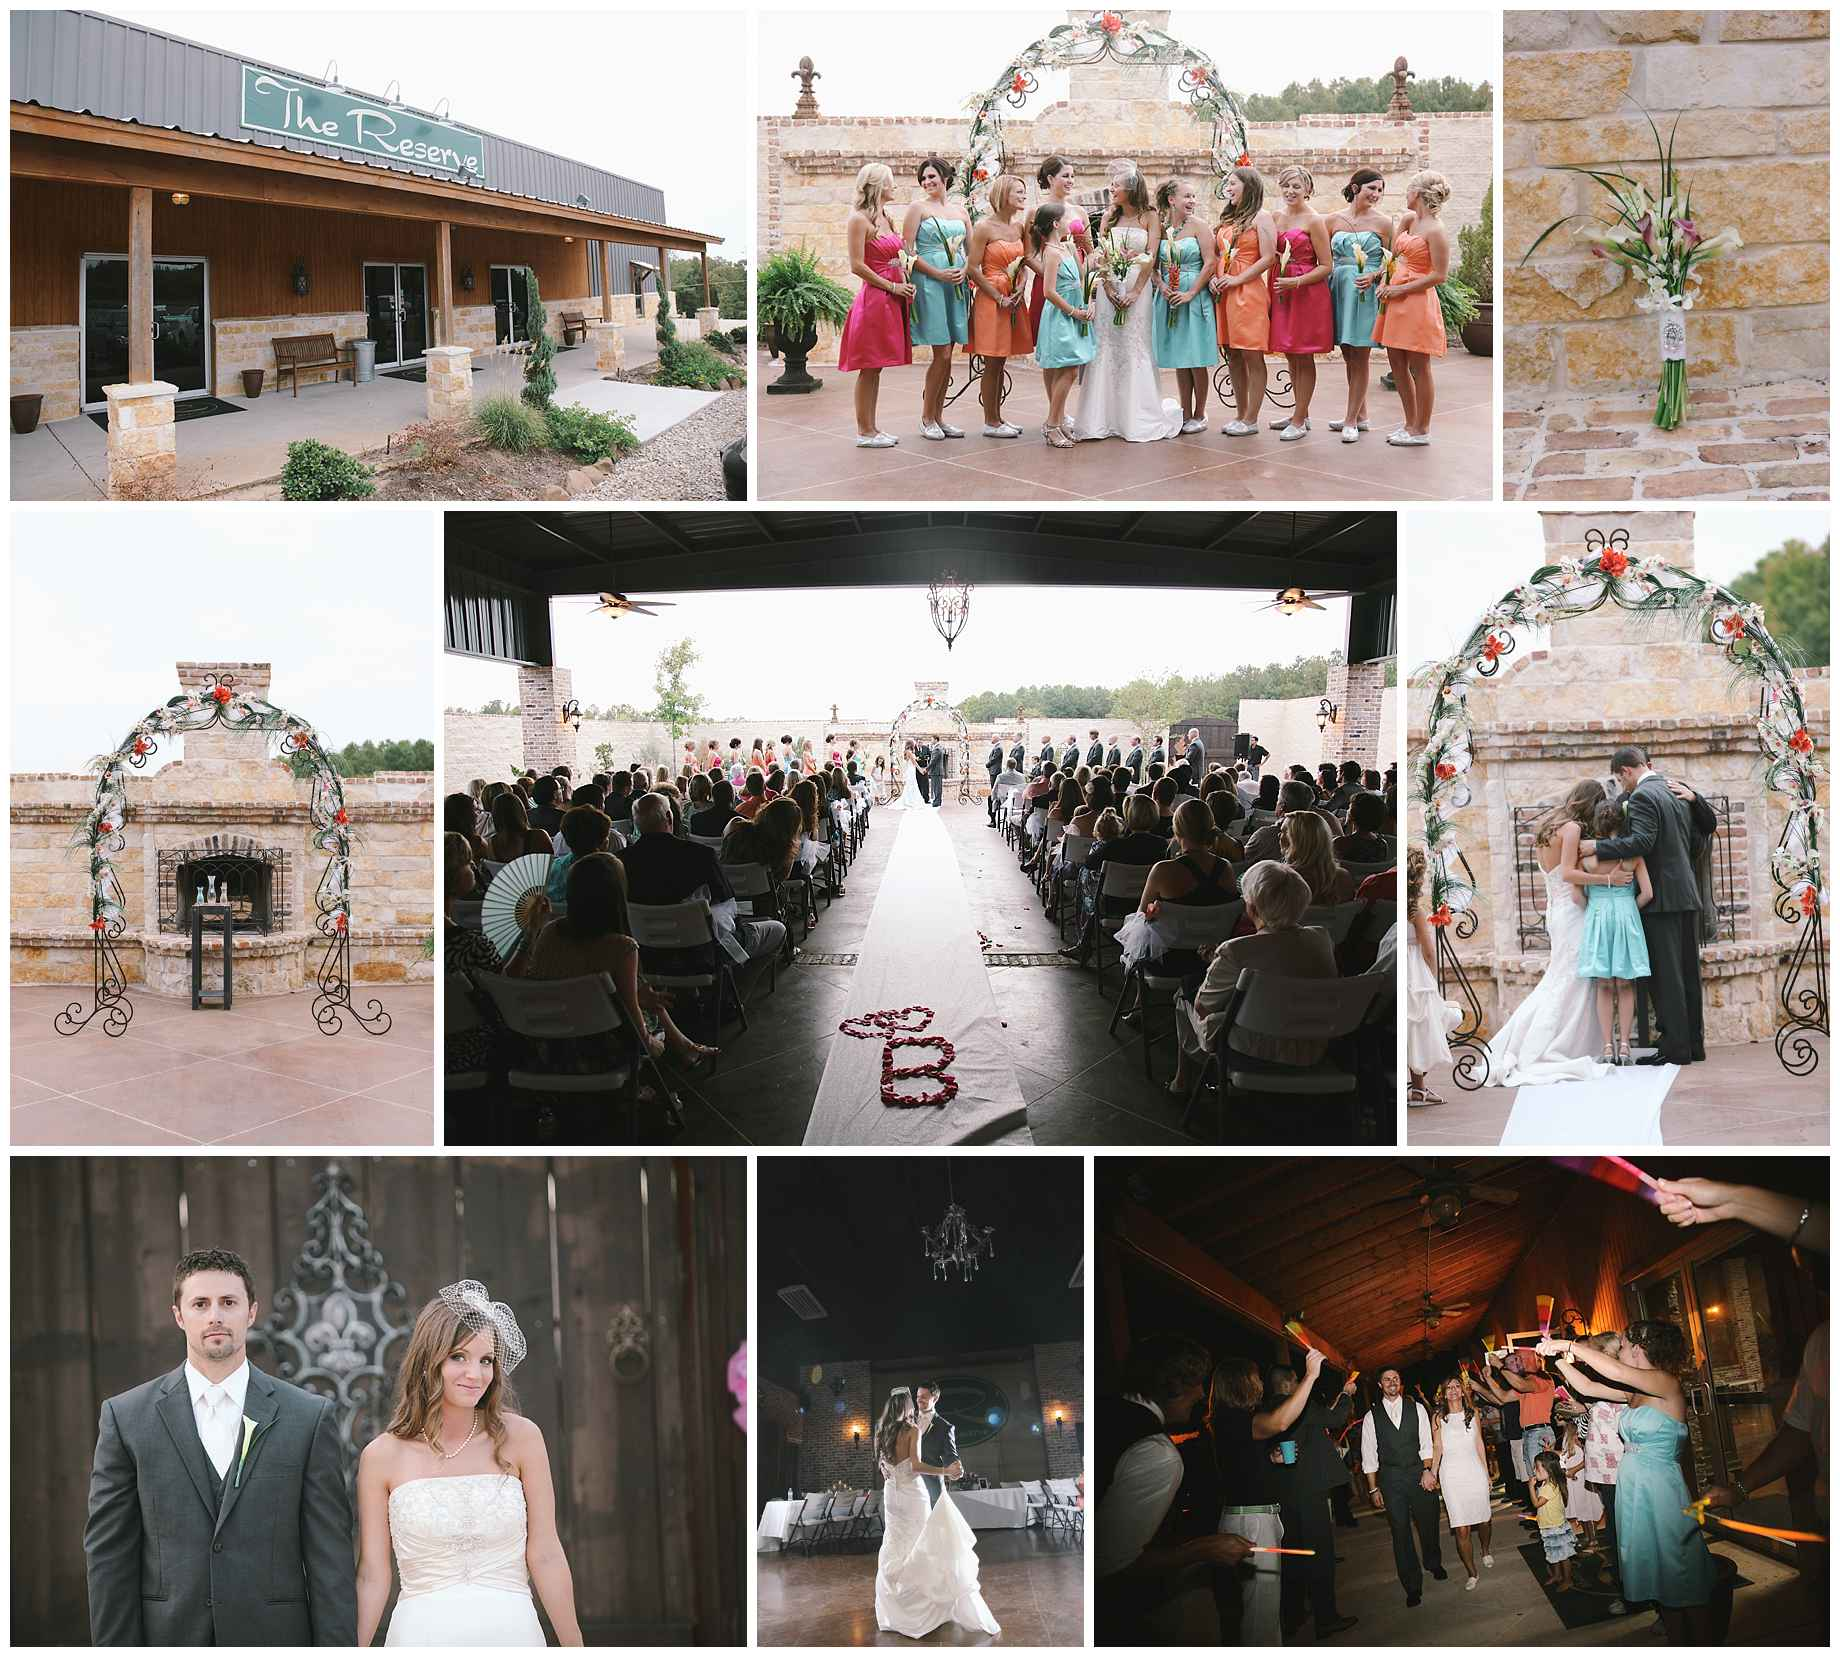 Wedding Venues In East Texas.10 Amazing Places To Get Married In East Texas Alexm Photography